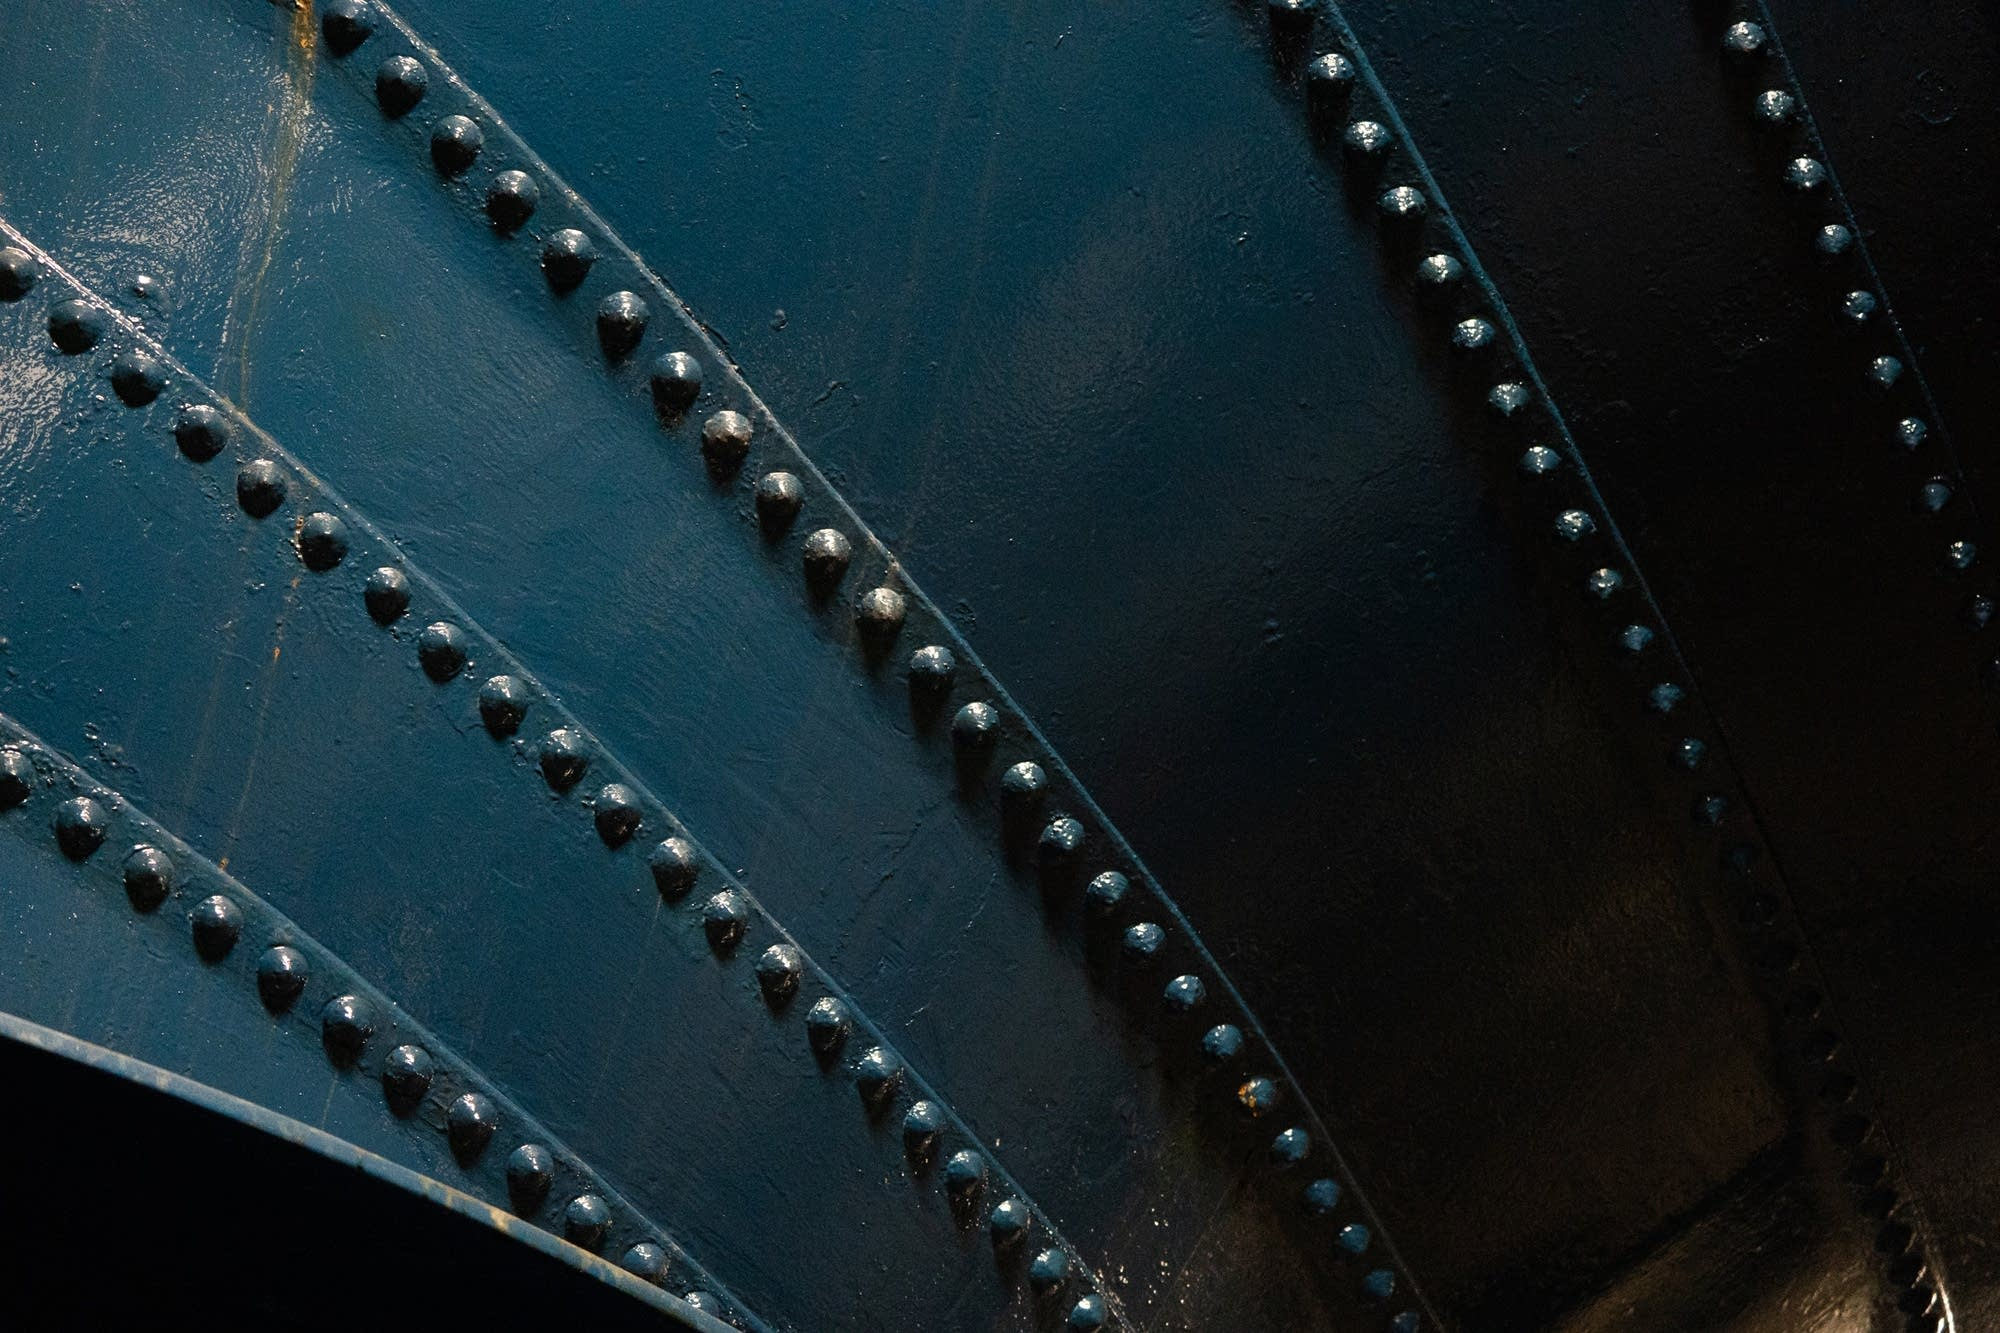 Rivets hold one of the 5 water intakes together.